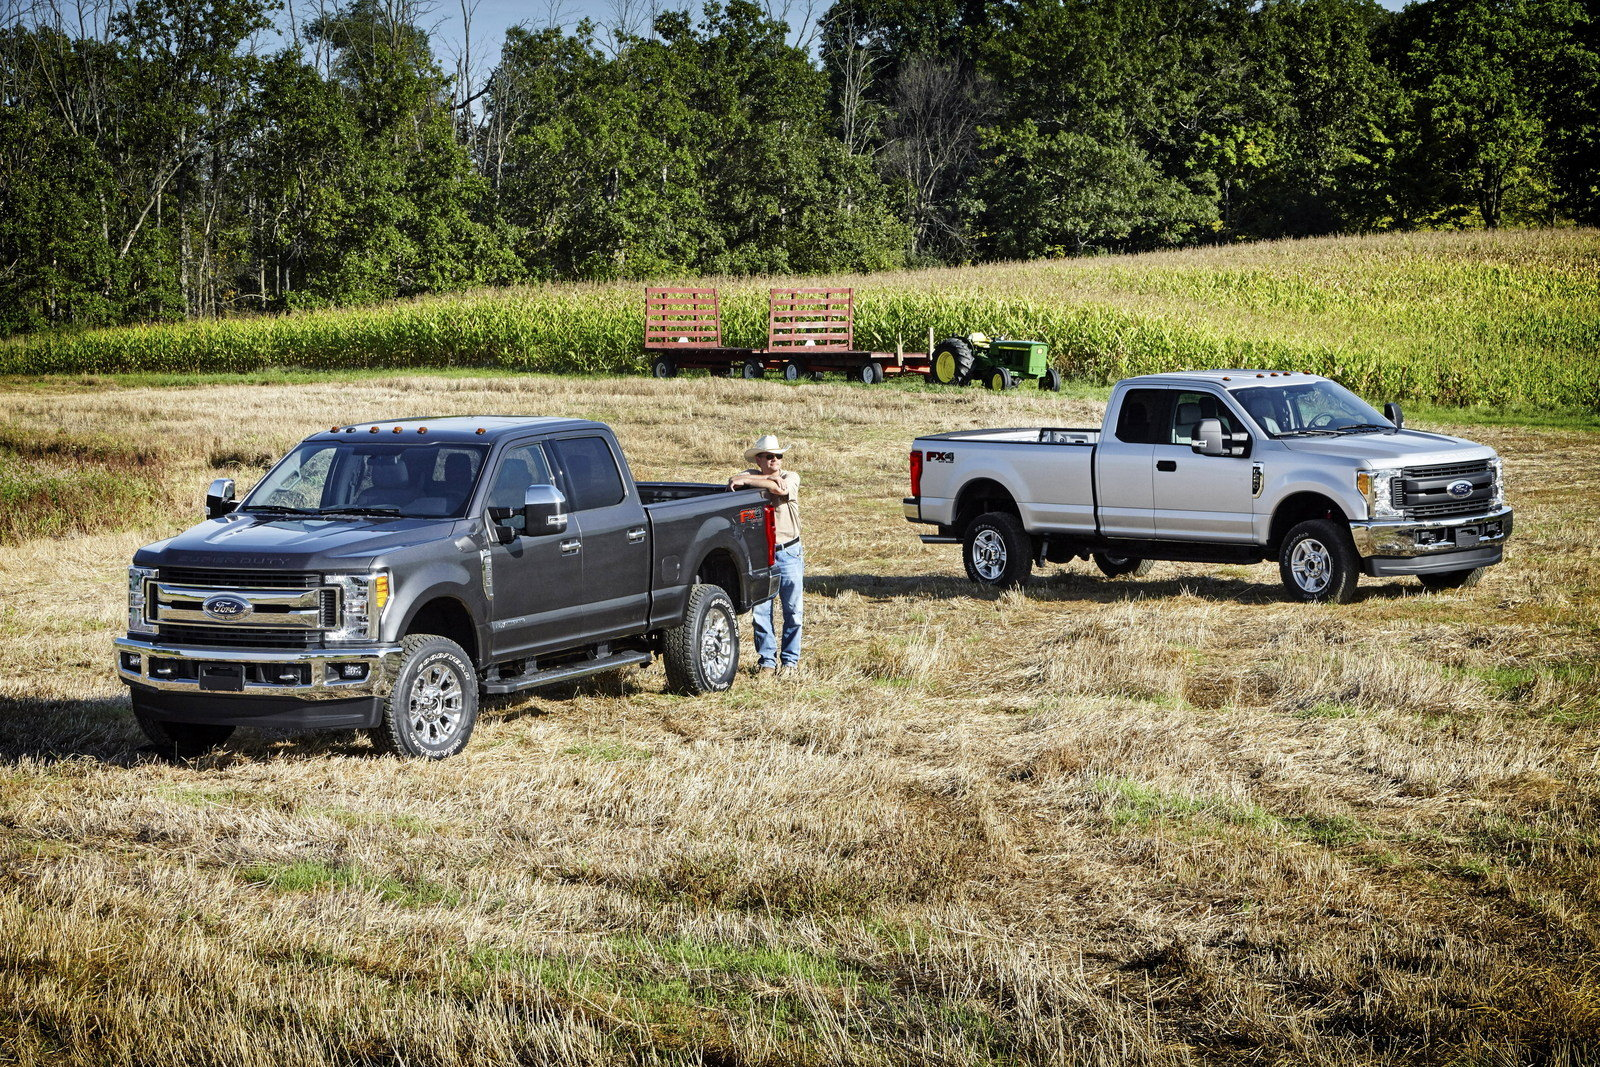 2017 ford super duty picture 648413 truck review top speed. Black Bedroom Furniture Sets. Home Design Ideas